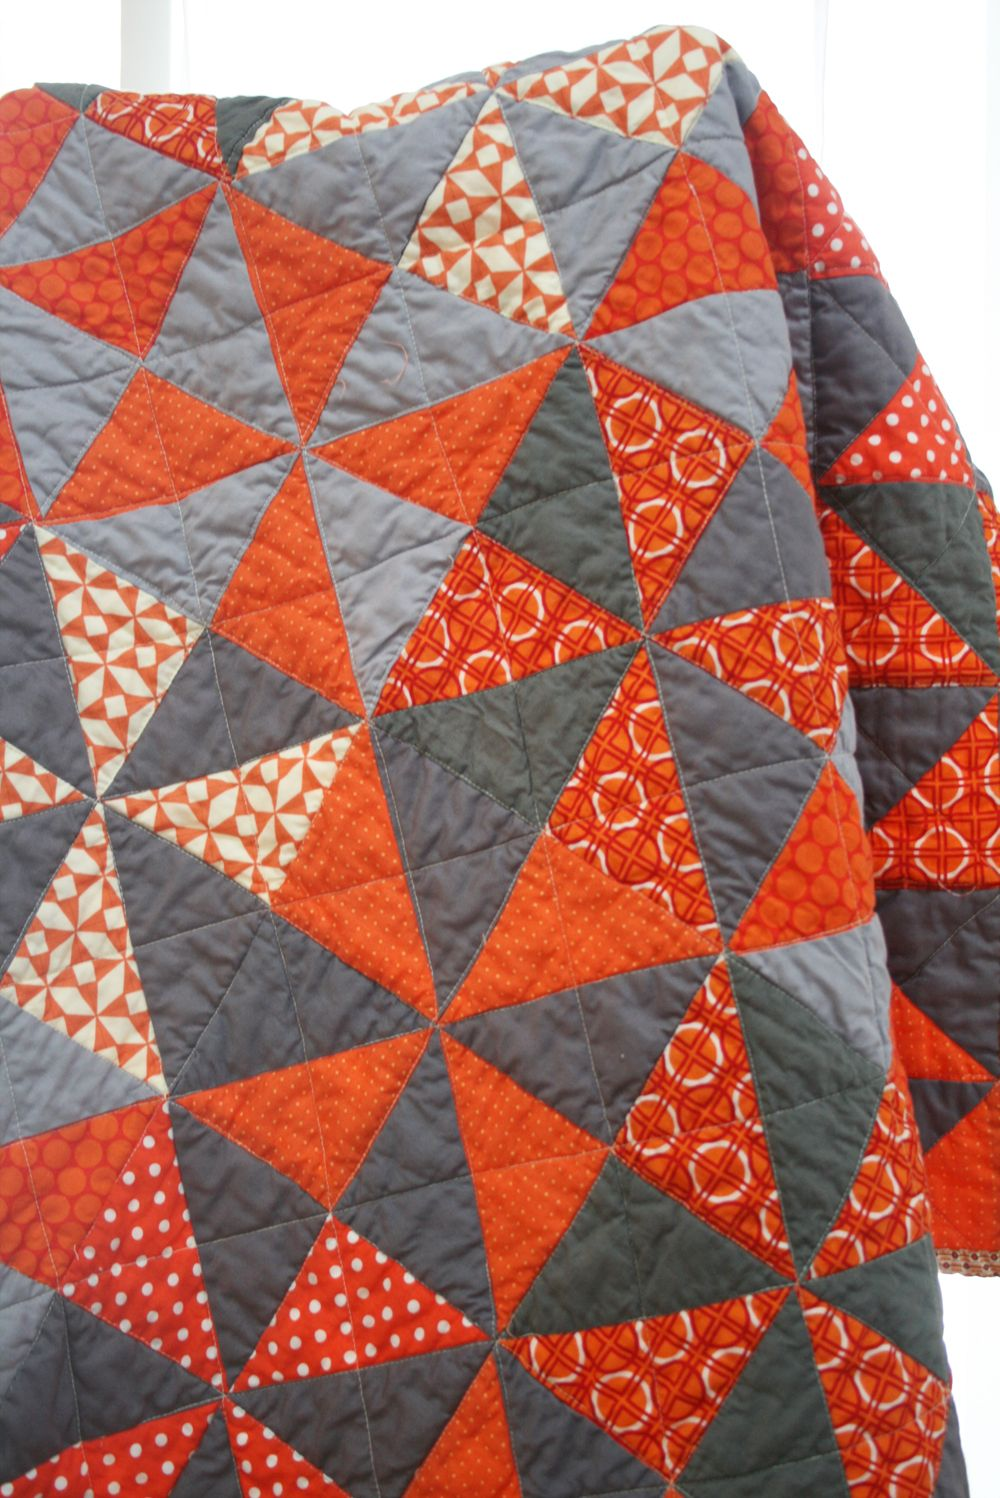 large edited orange color quilt quilts yellow view with htm andor shop by image img and search or